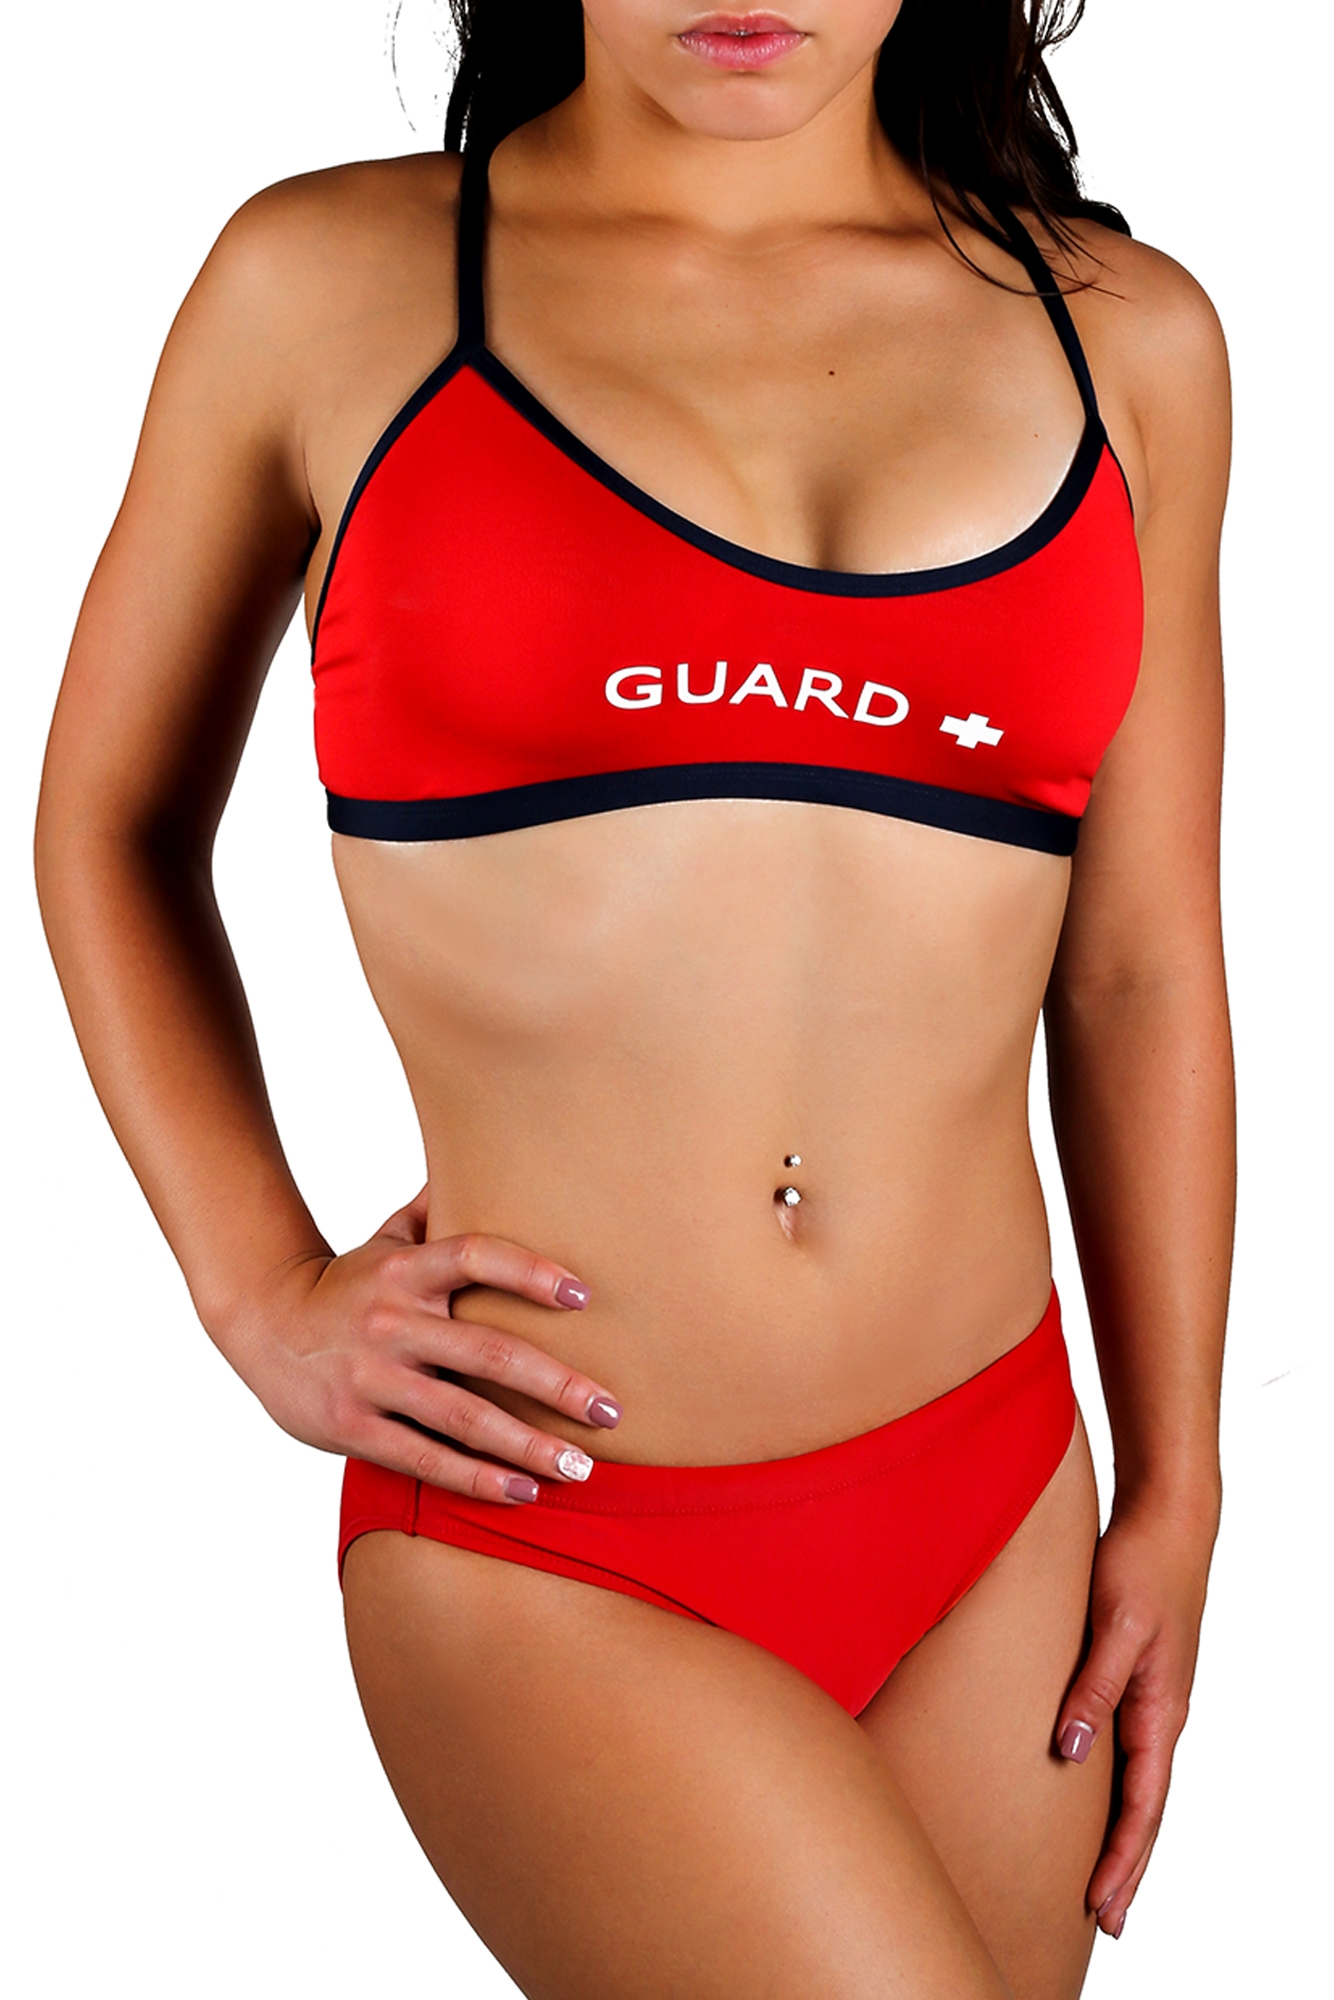 dfc7be737747ee Adoretex Women's Guard Cross Back Workout Bikini Swimsuit Larger Photo ...